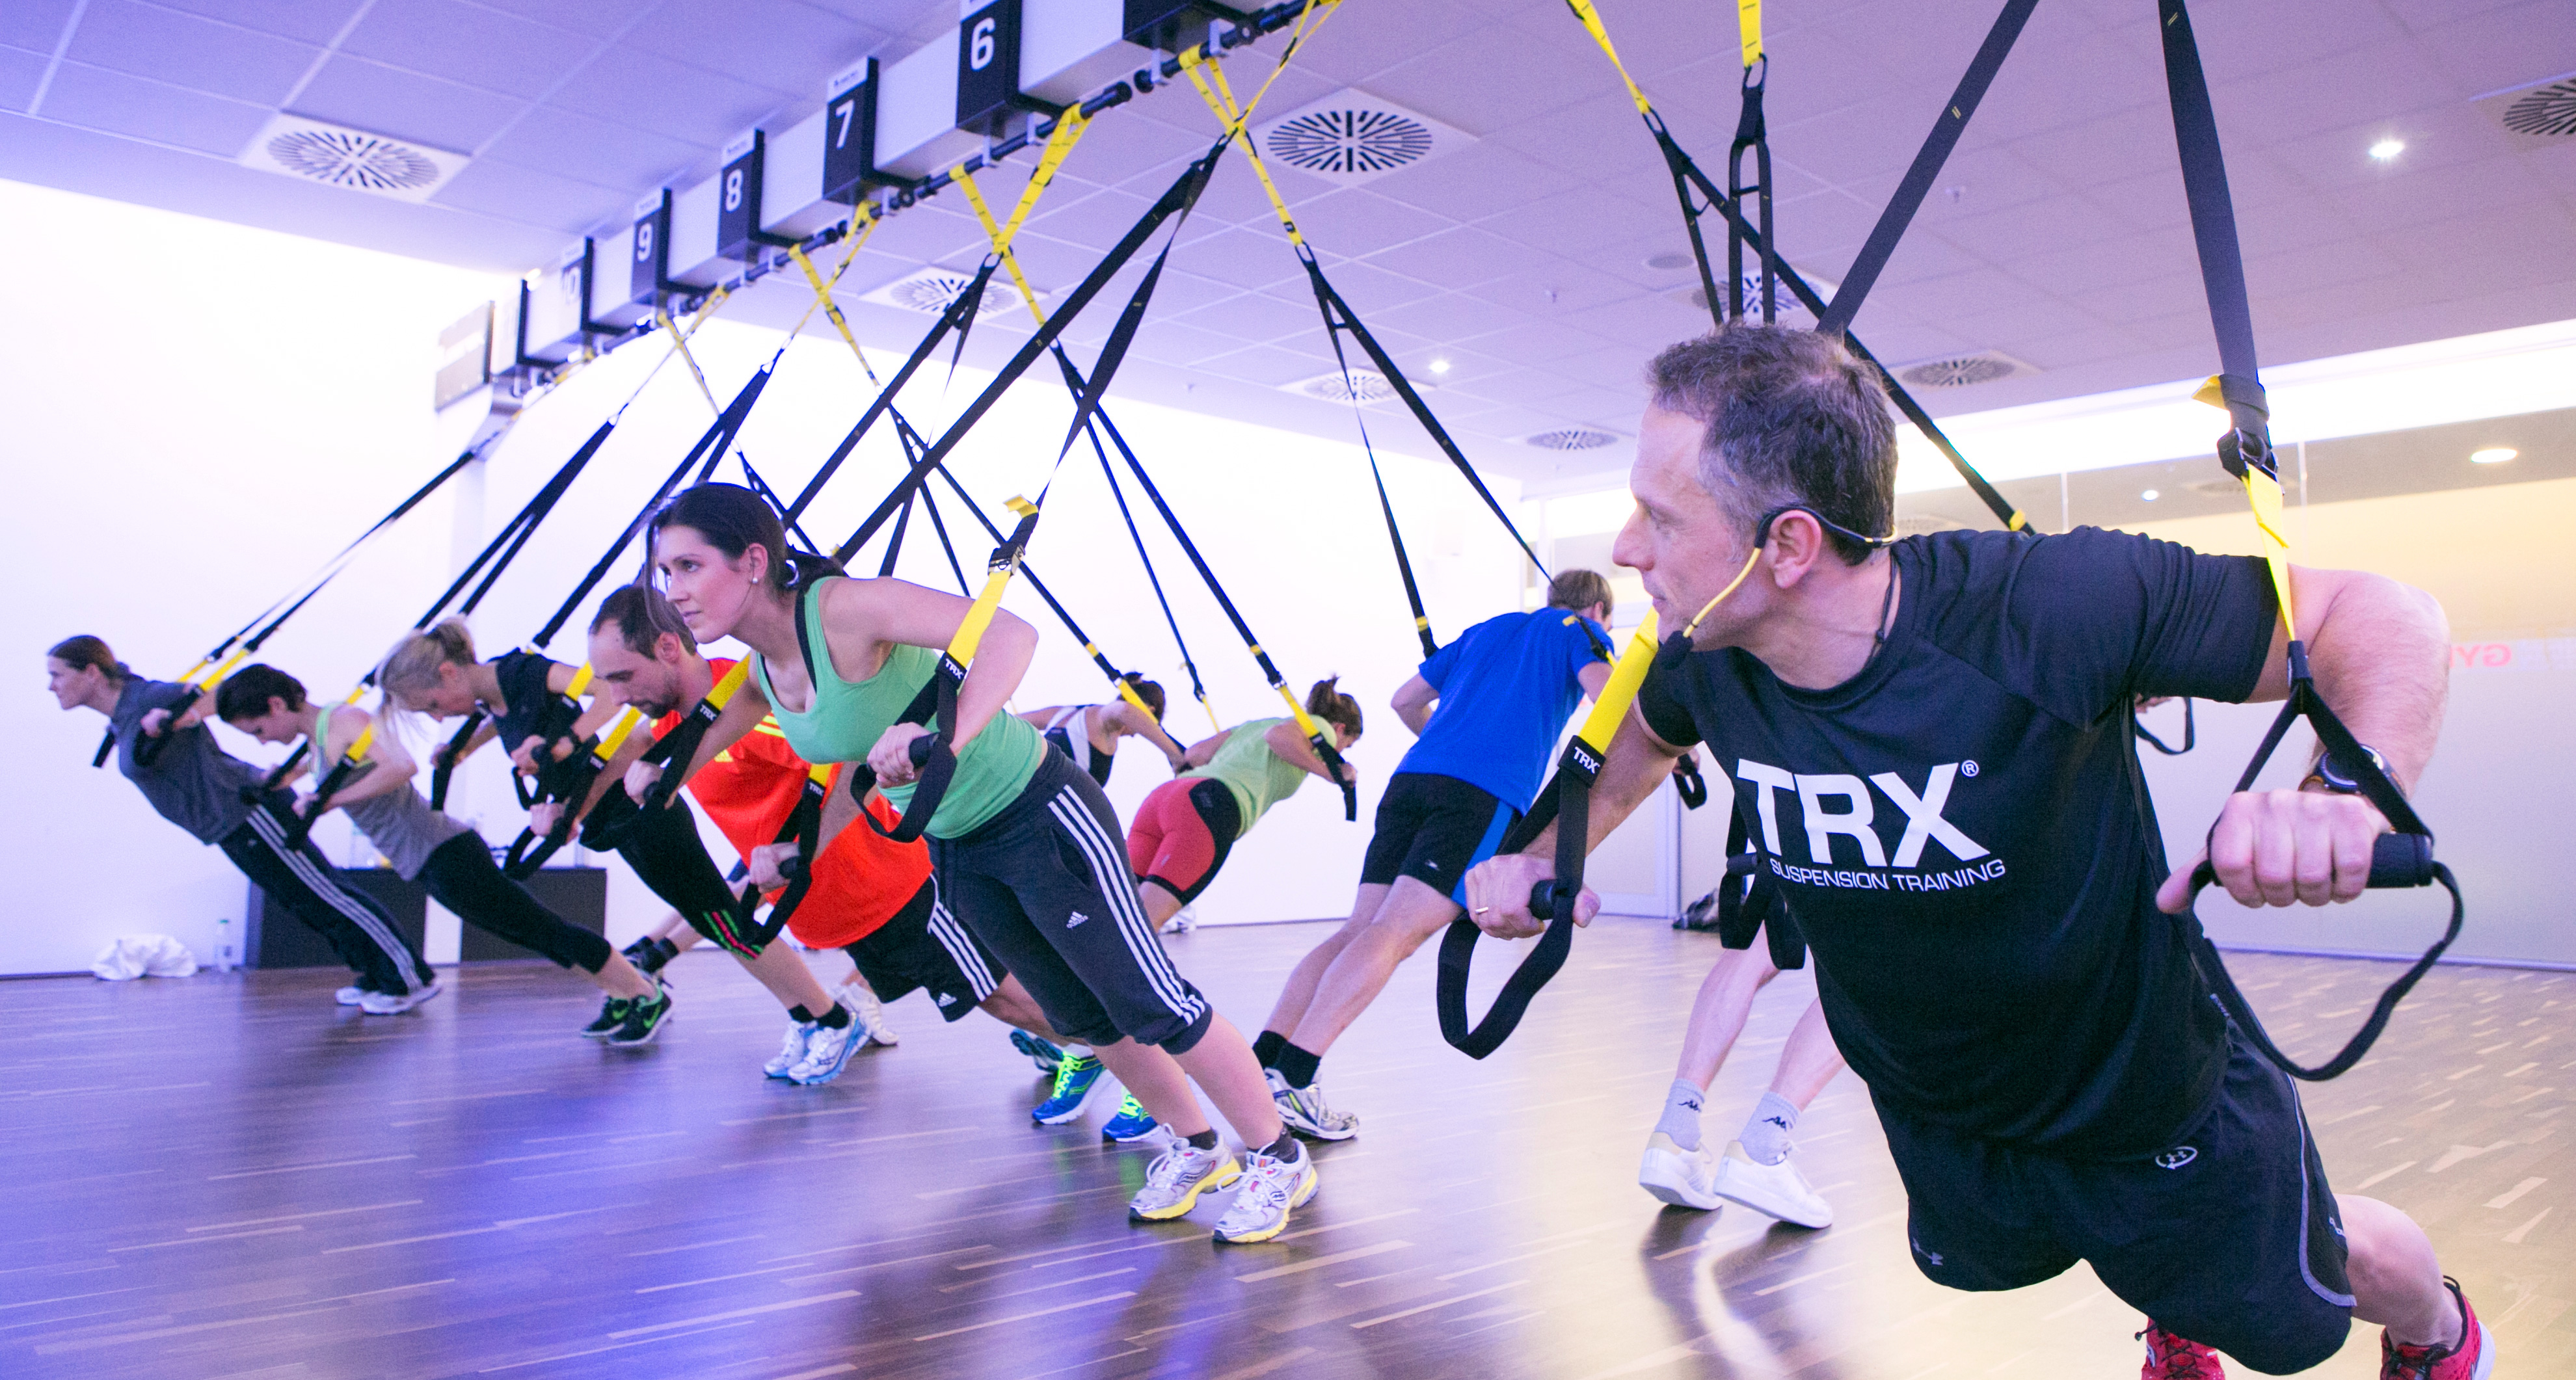 TRX-Training-Gerhard-Budy